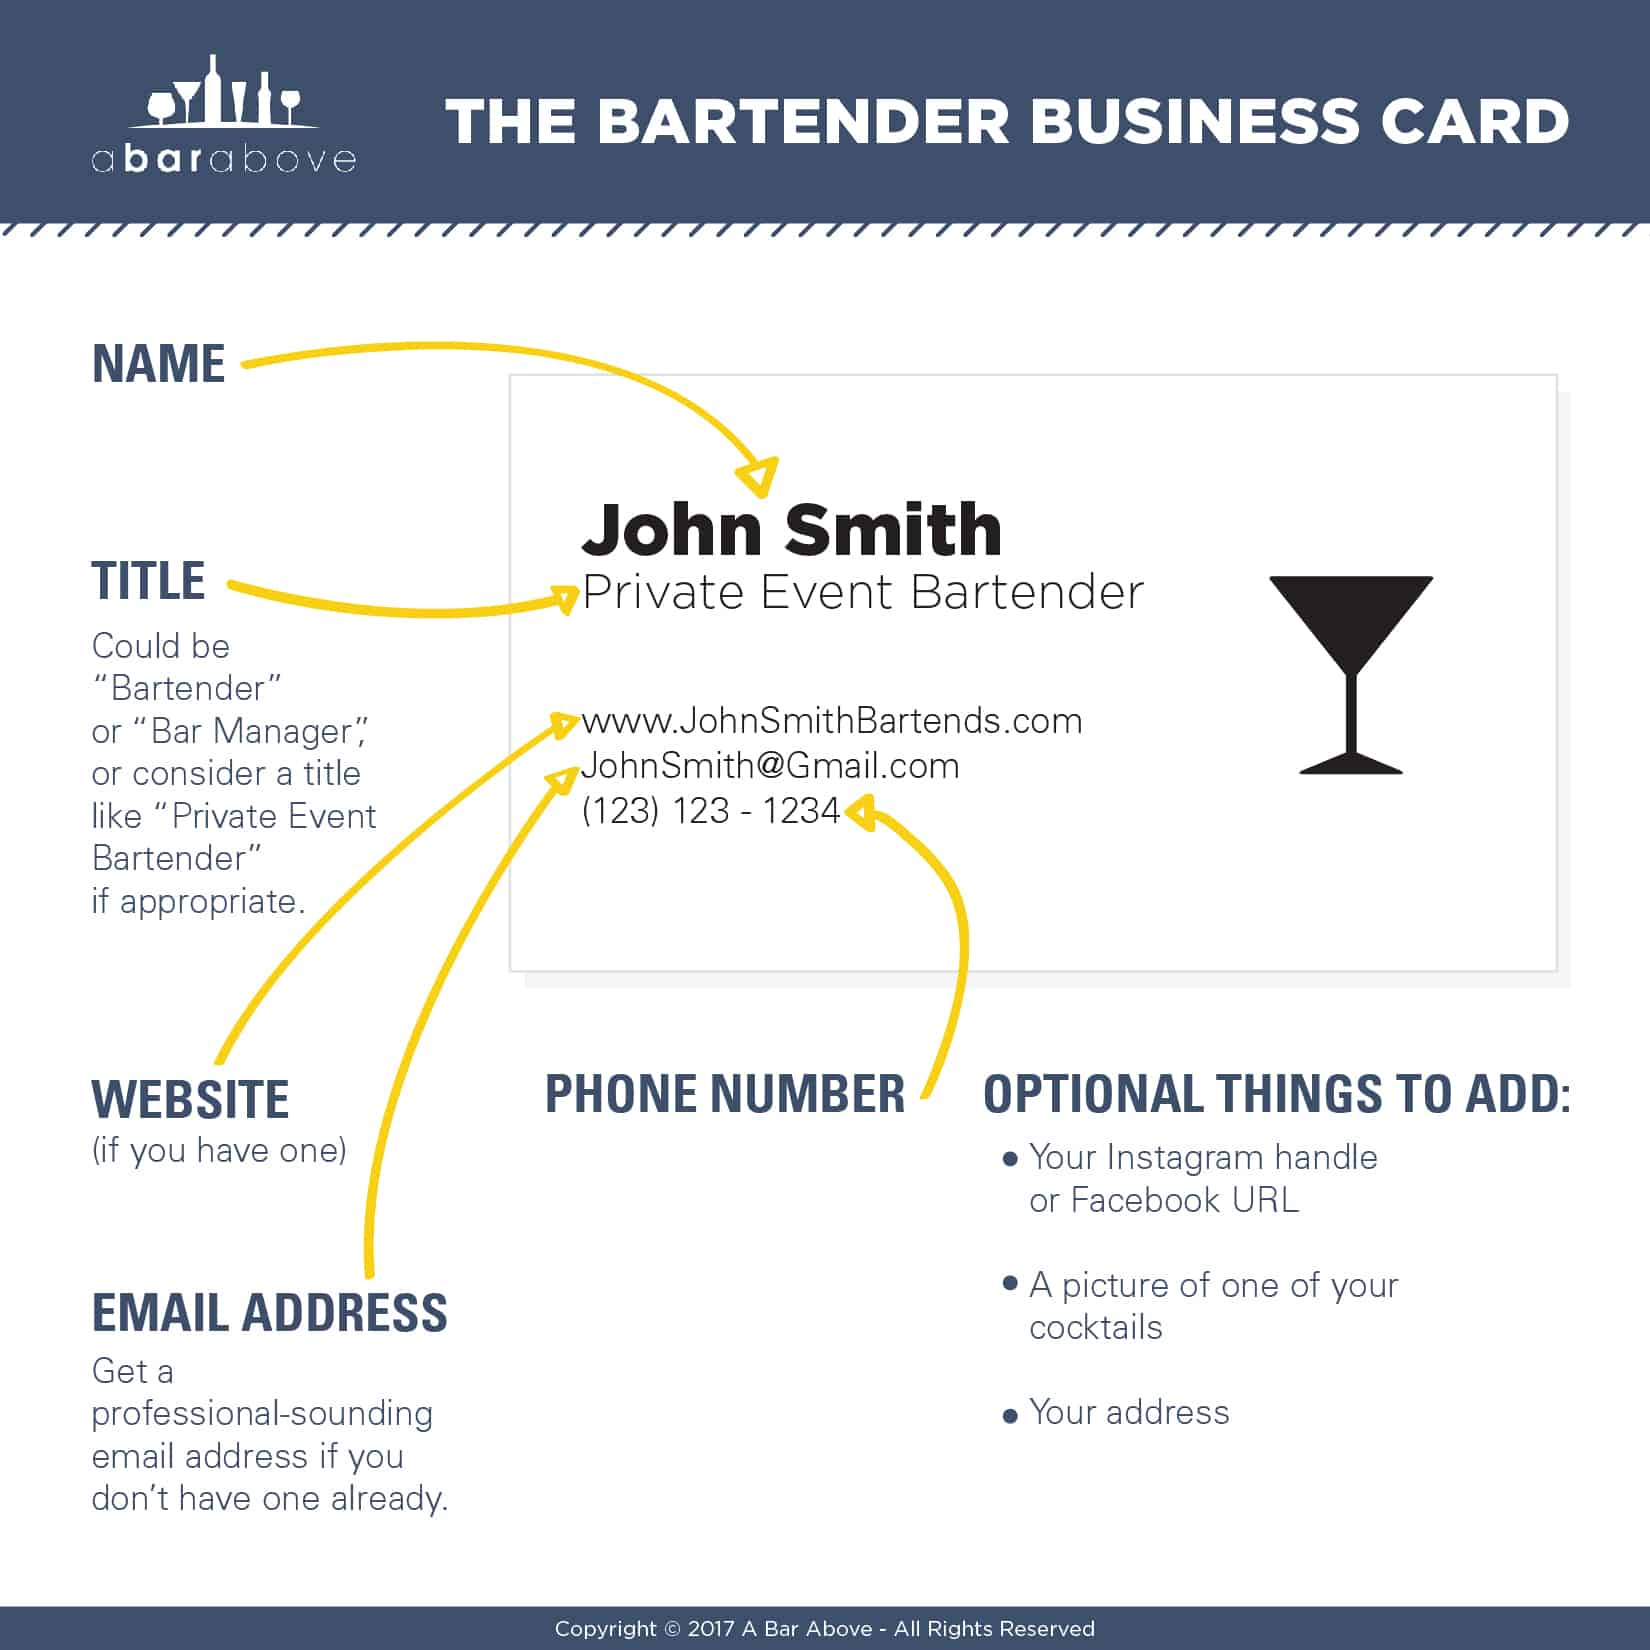 bartender business cards why you should have them and how to